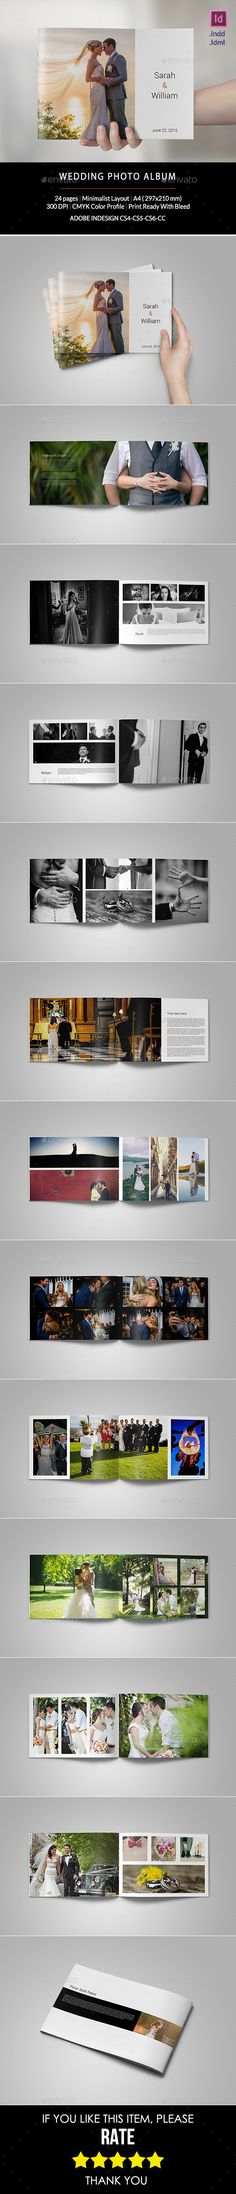 Photography Portfolio Brochure Template InDesign INDD - 24 Pages ...